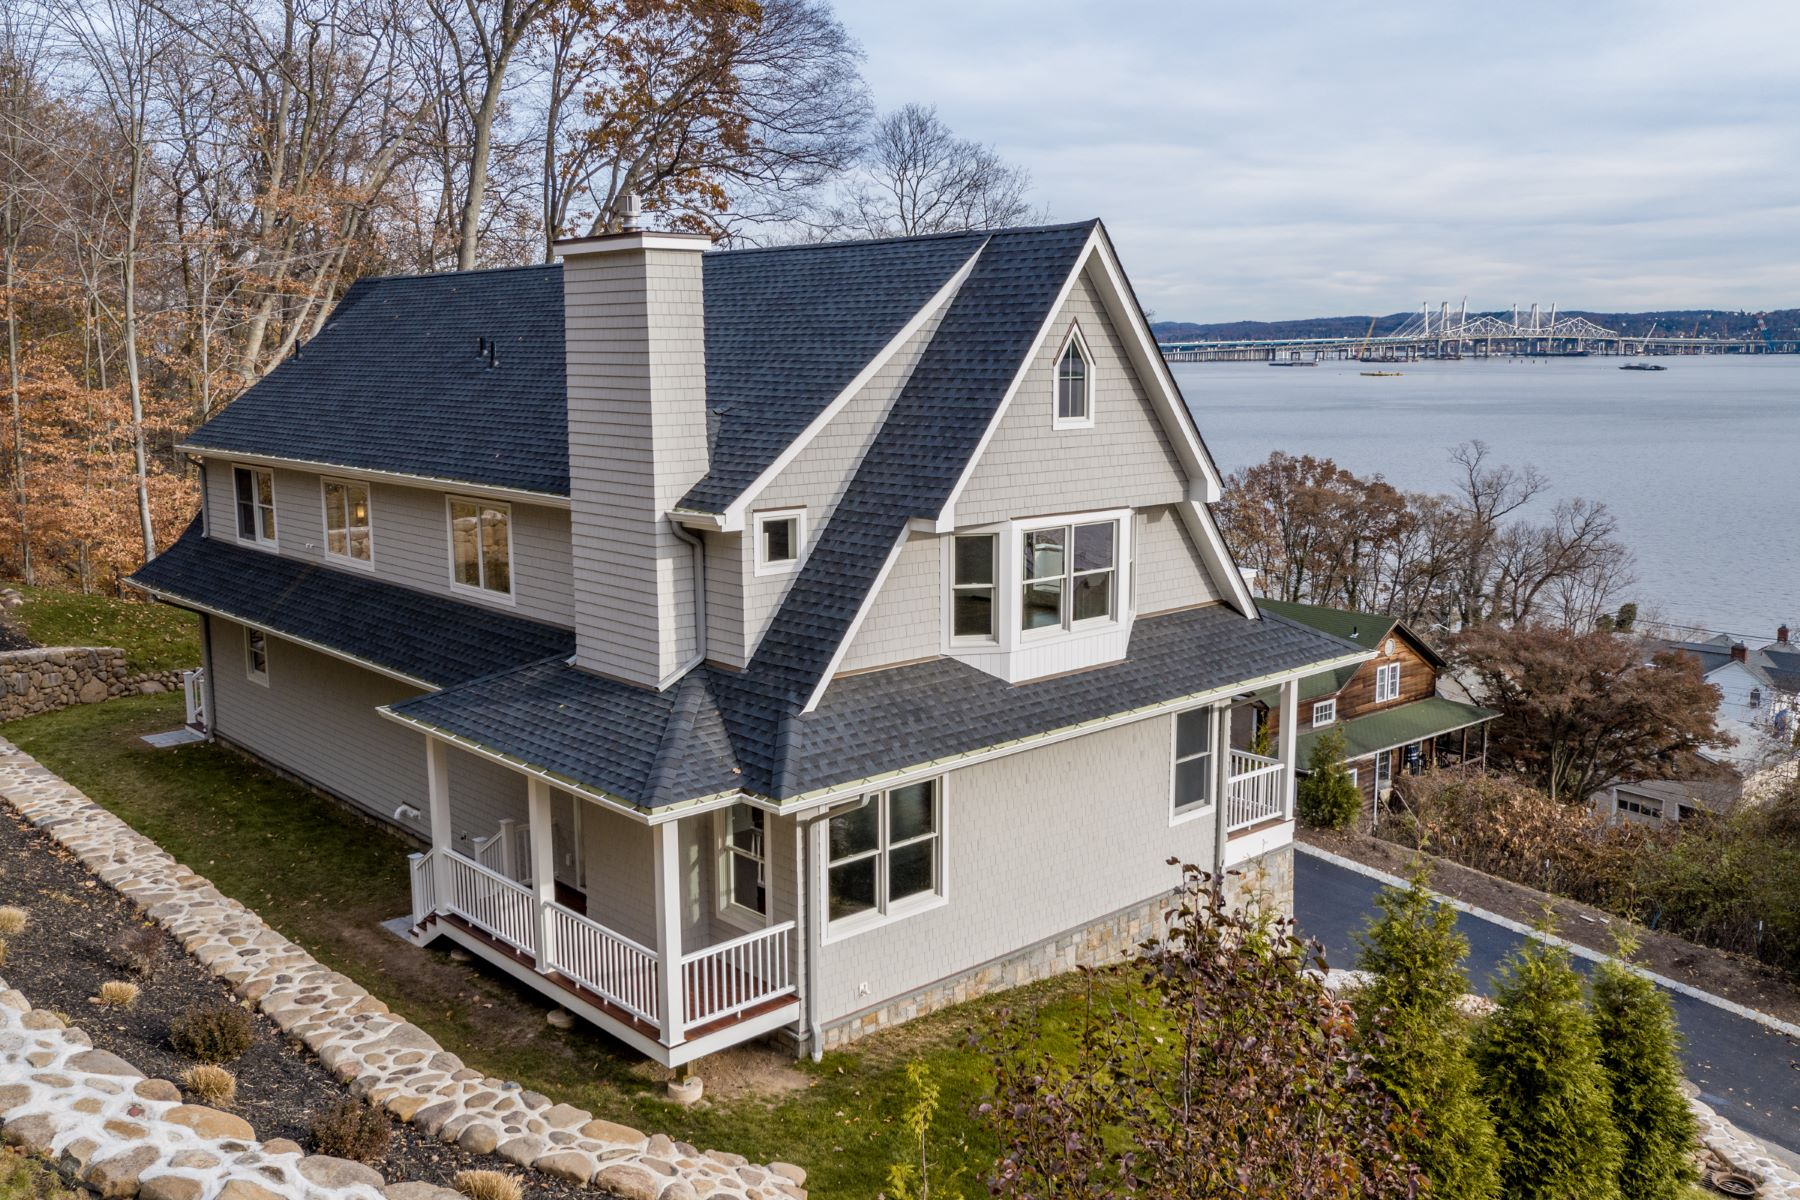 Single Family Home for Sale at Panoramic Hudson River Views - New Custom Colonial 28 Stevenson Street, Piermont, New York, 10968 United States